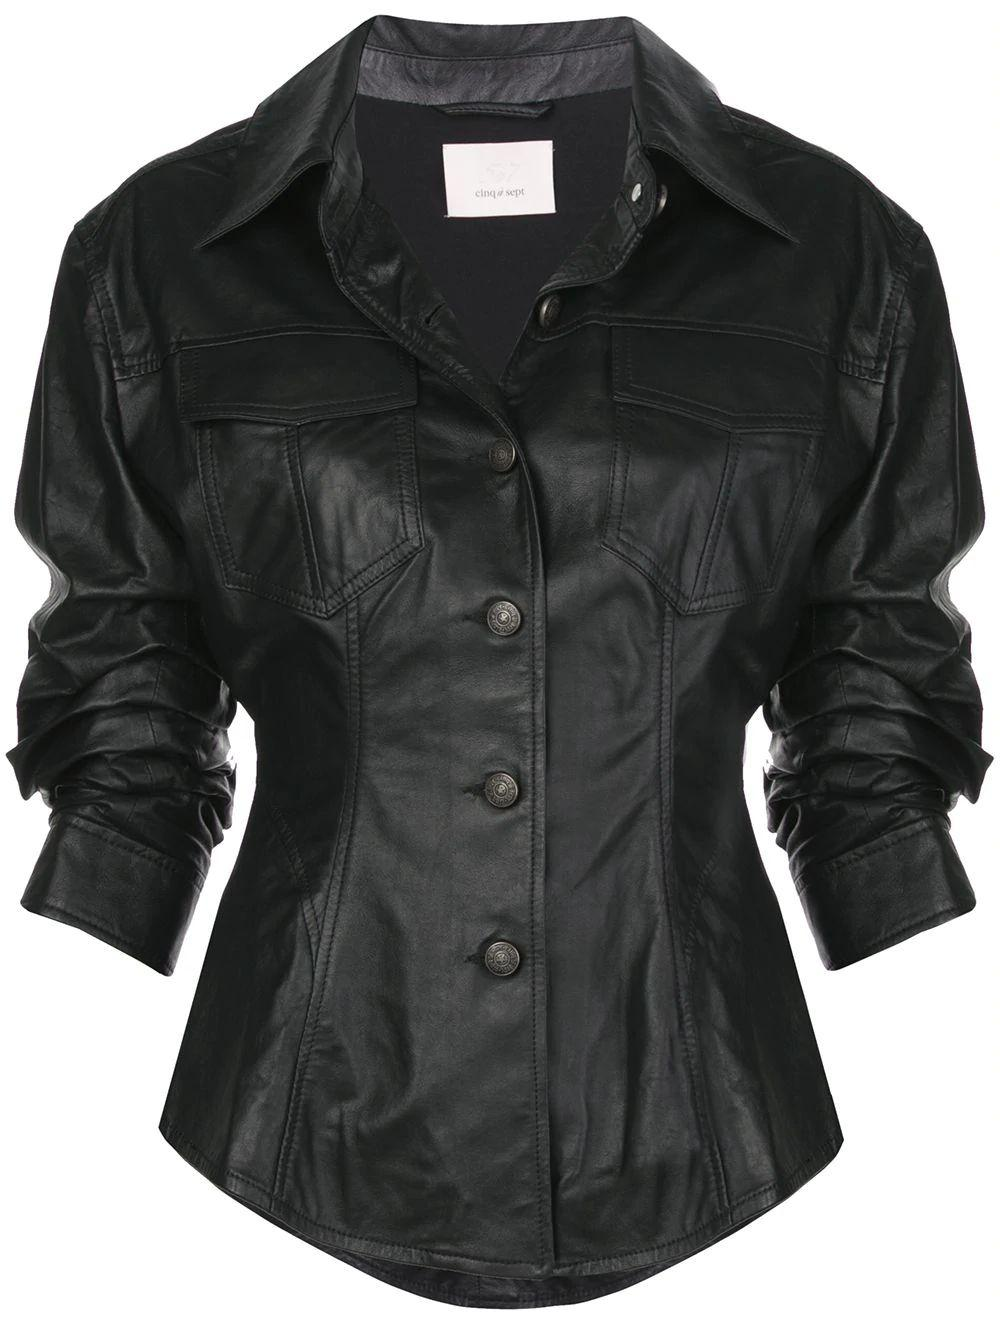 Canyon Leather Jacket